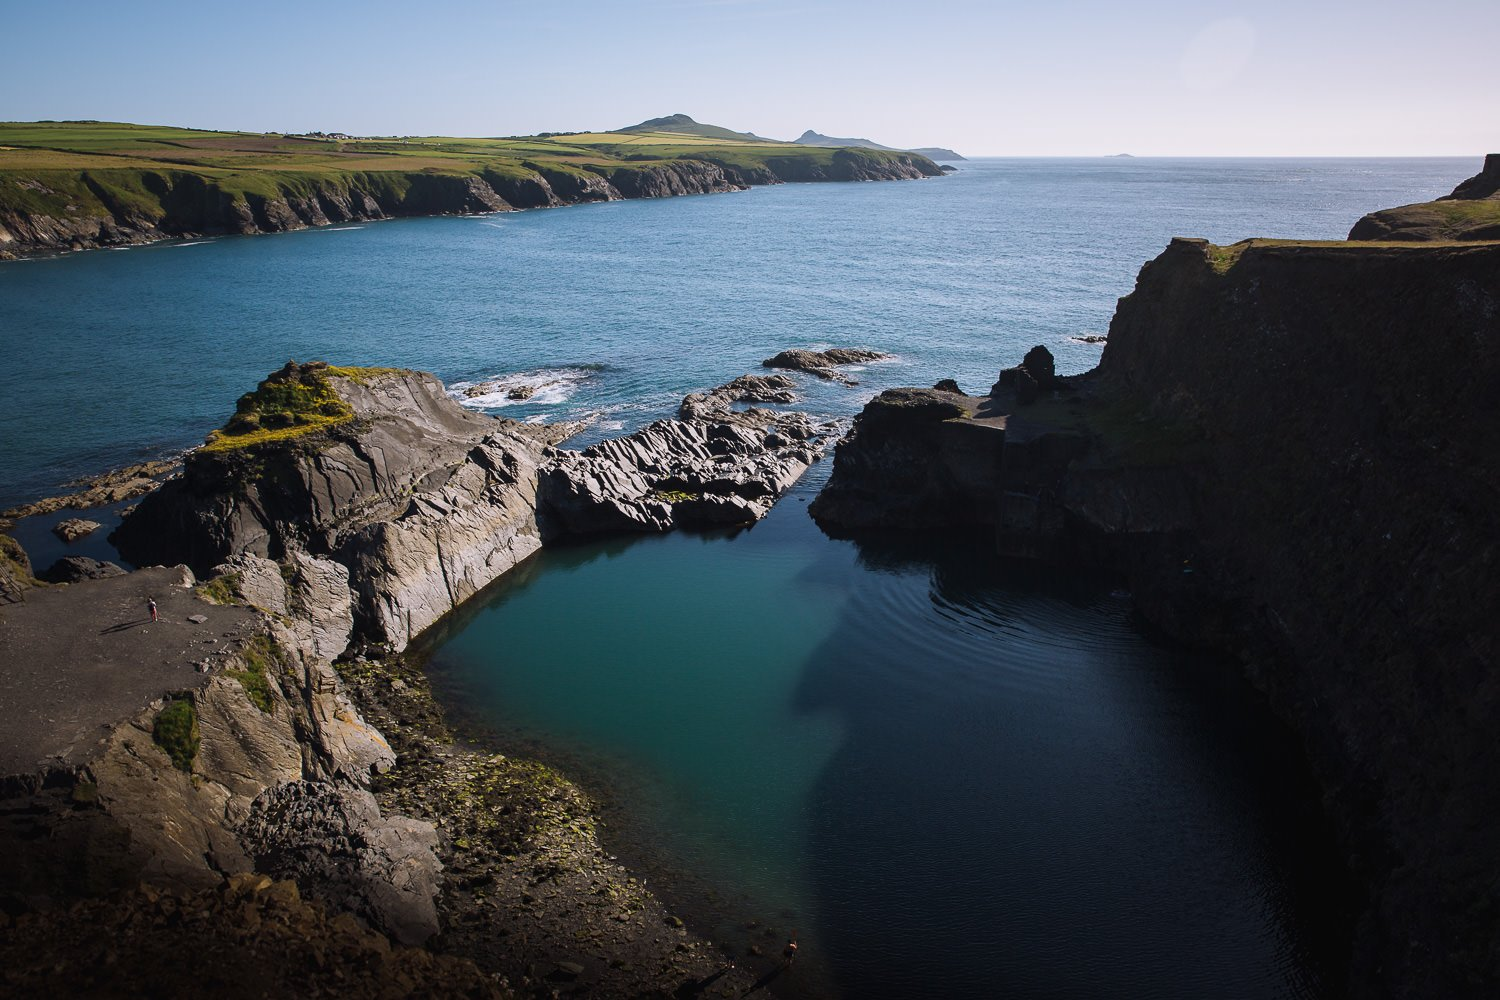 disused quarry pit in the ocean, Blue Lagoon Abereiddy